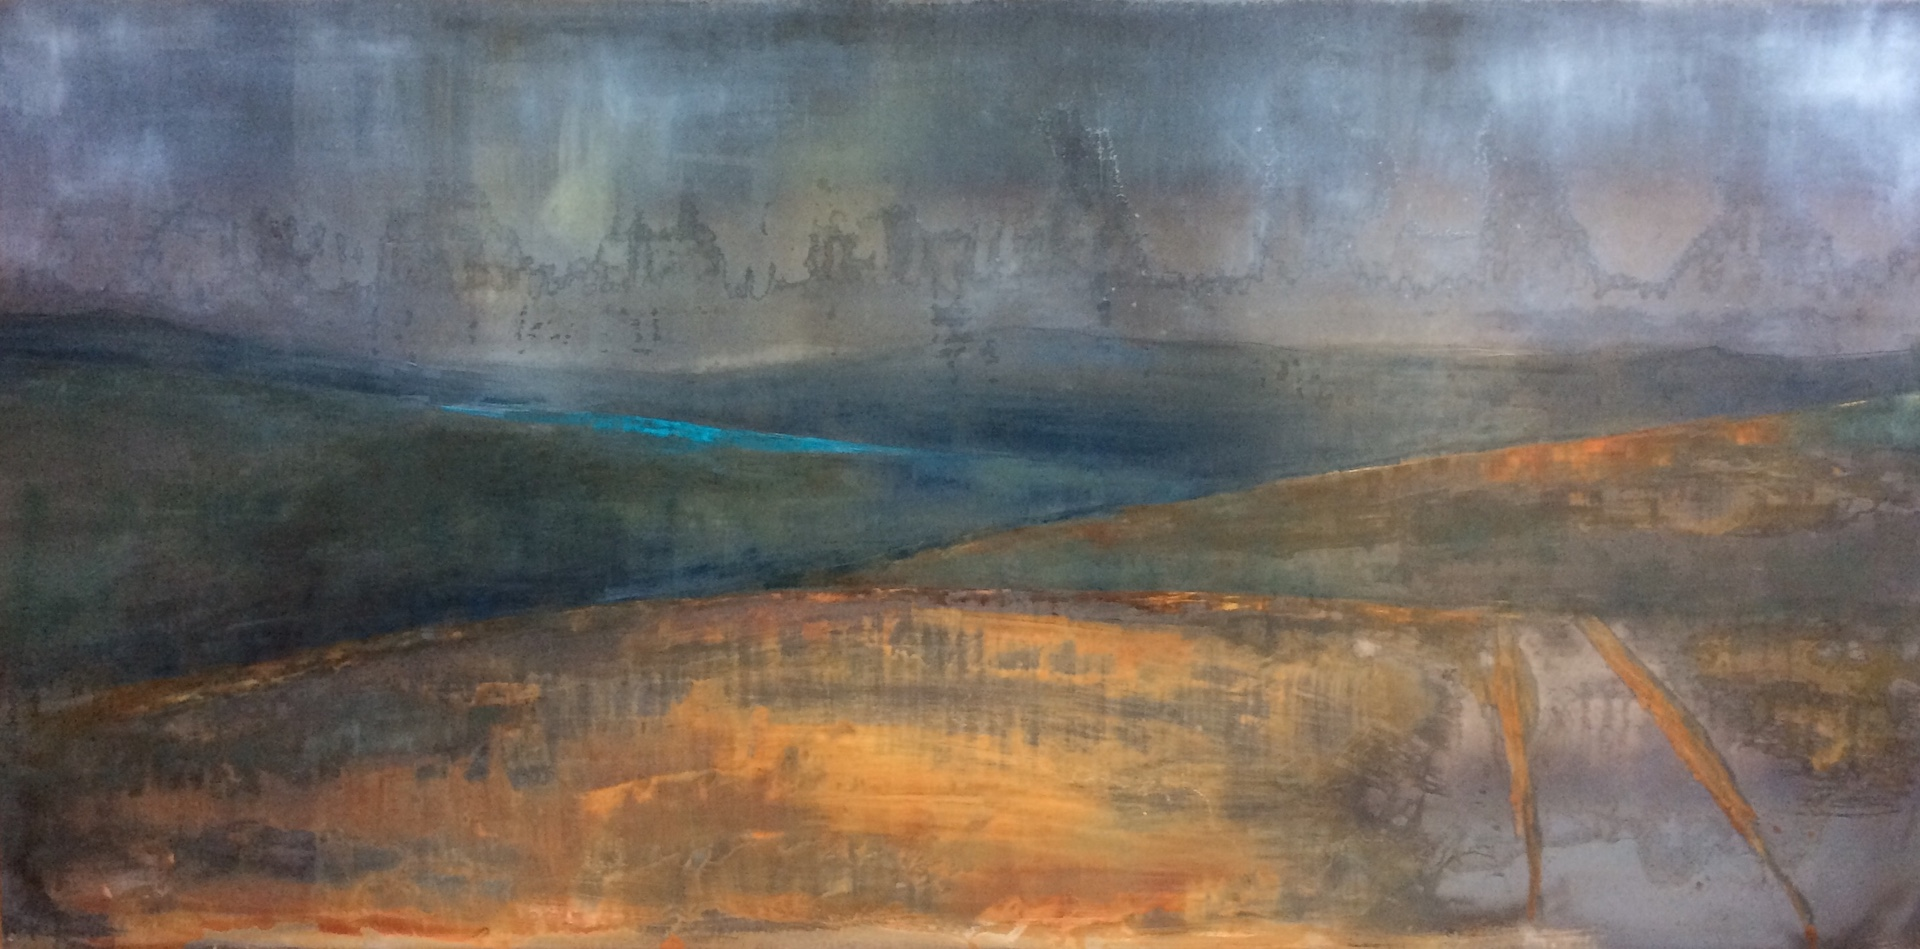 Gloomy Sky Palace. Oil and Patina on Steel. 1m/2m. 2018. Landscape painting Contemporary oil landscape painting